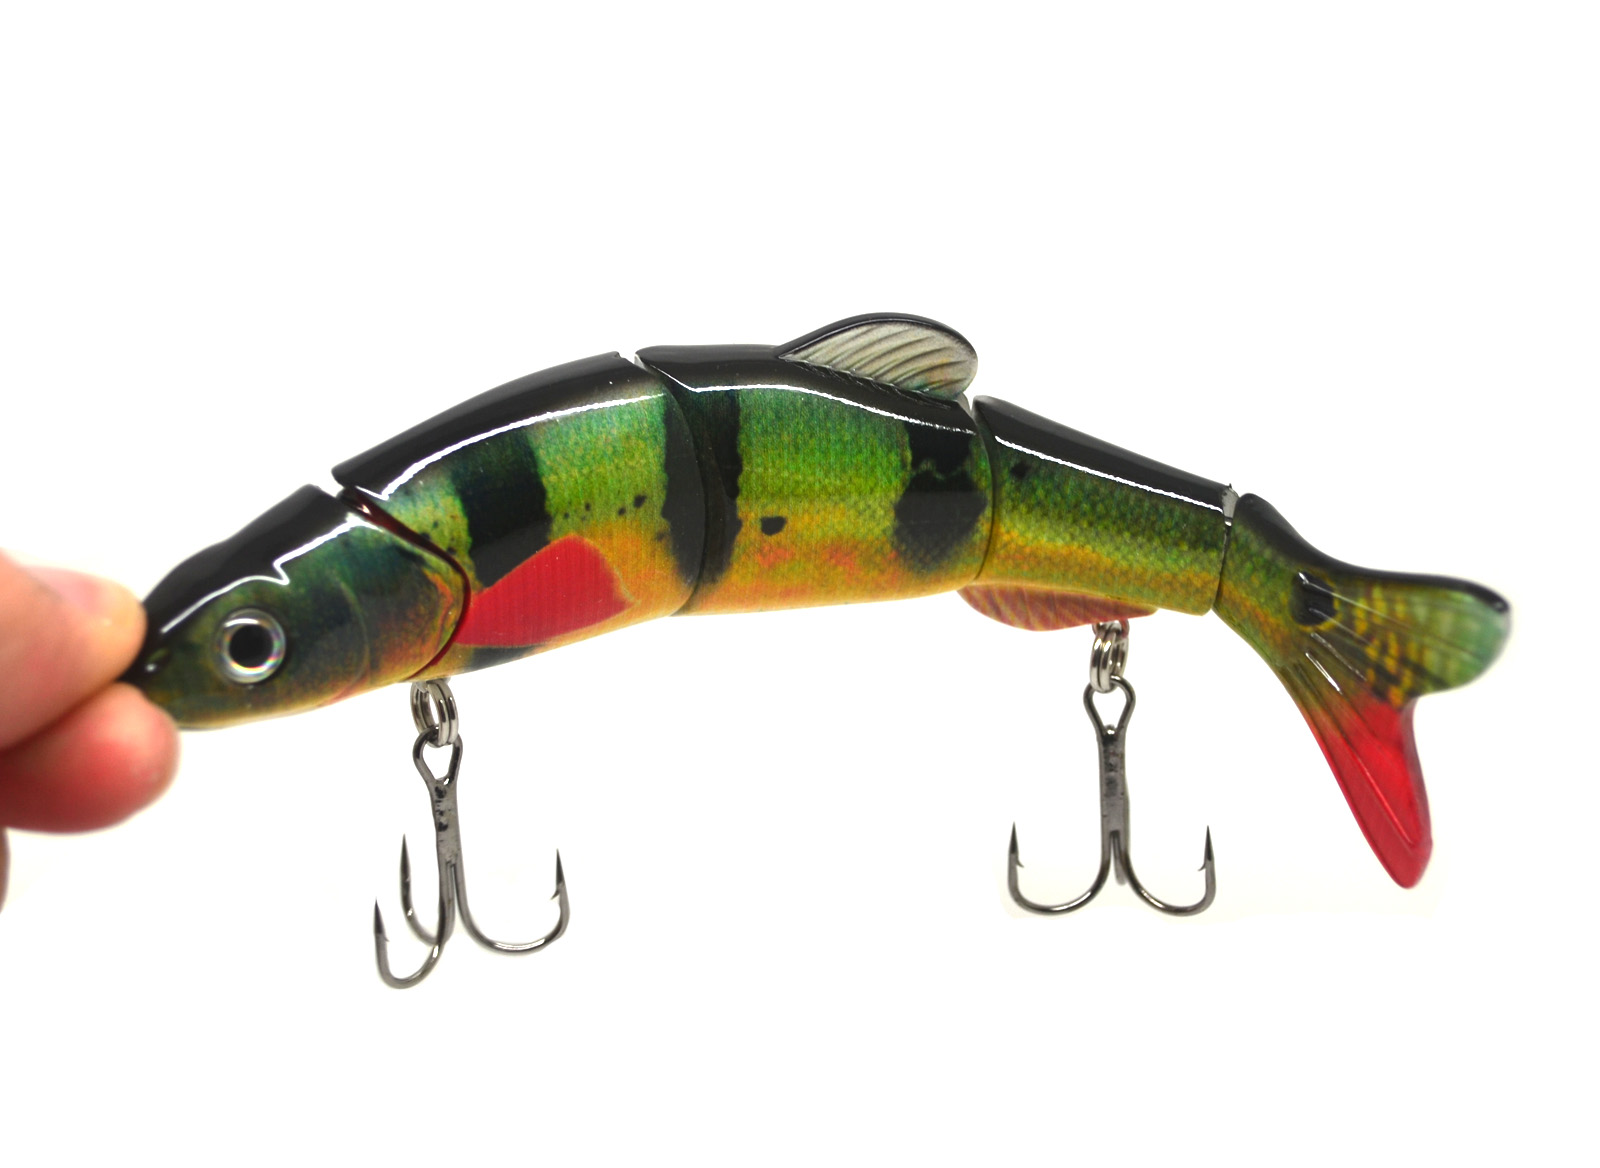 6 5 multi jointed bass pike muskie fishing lure bait for Pike fishing lures